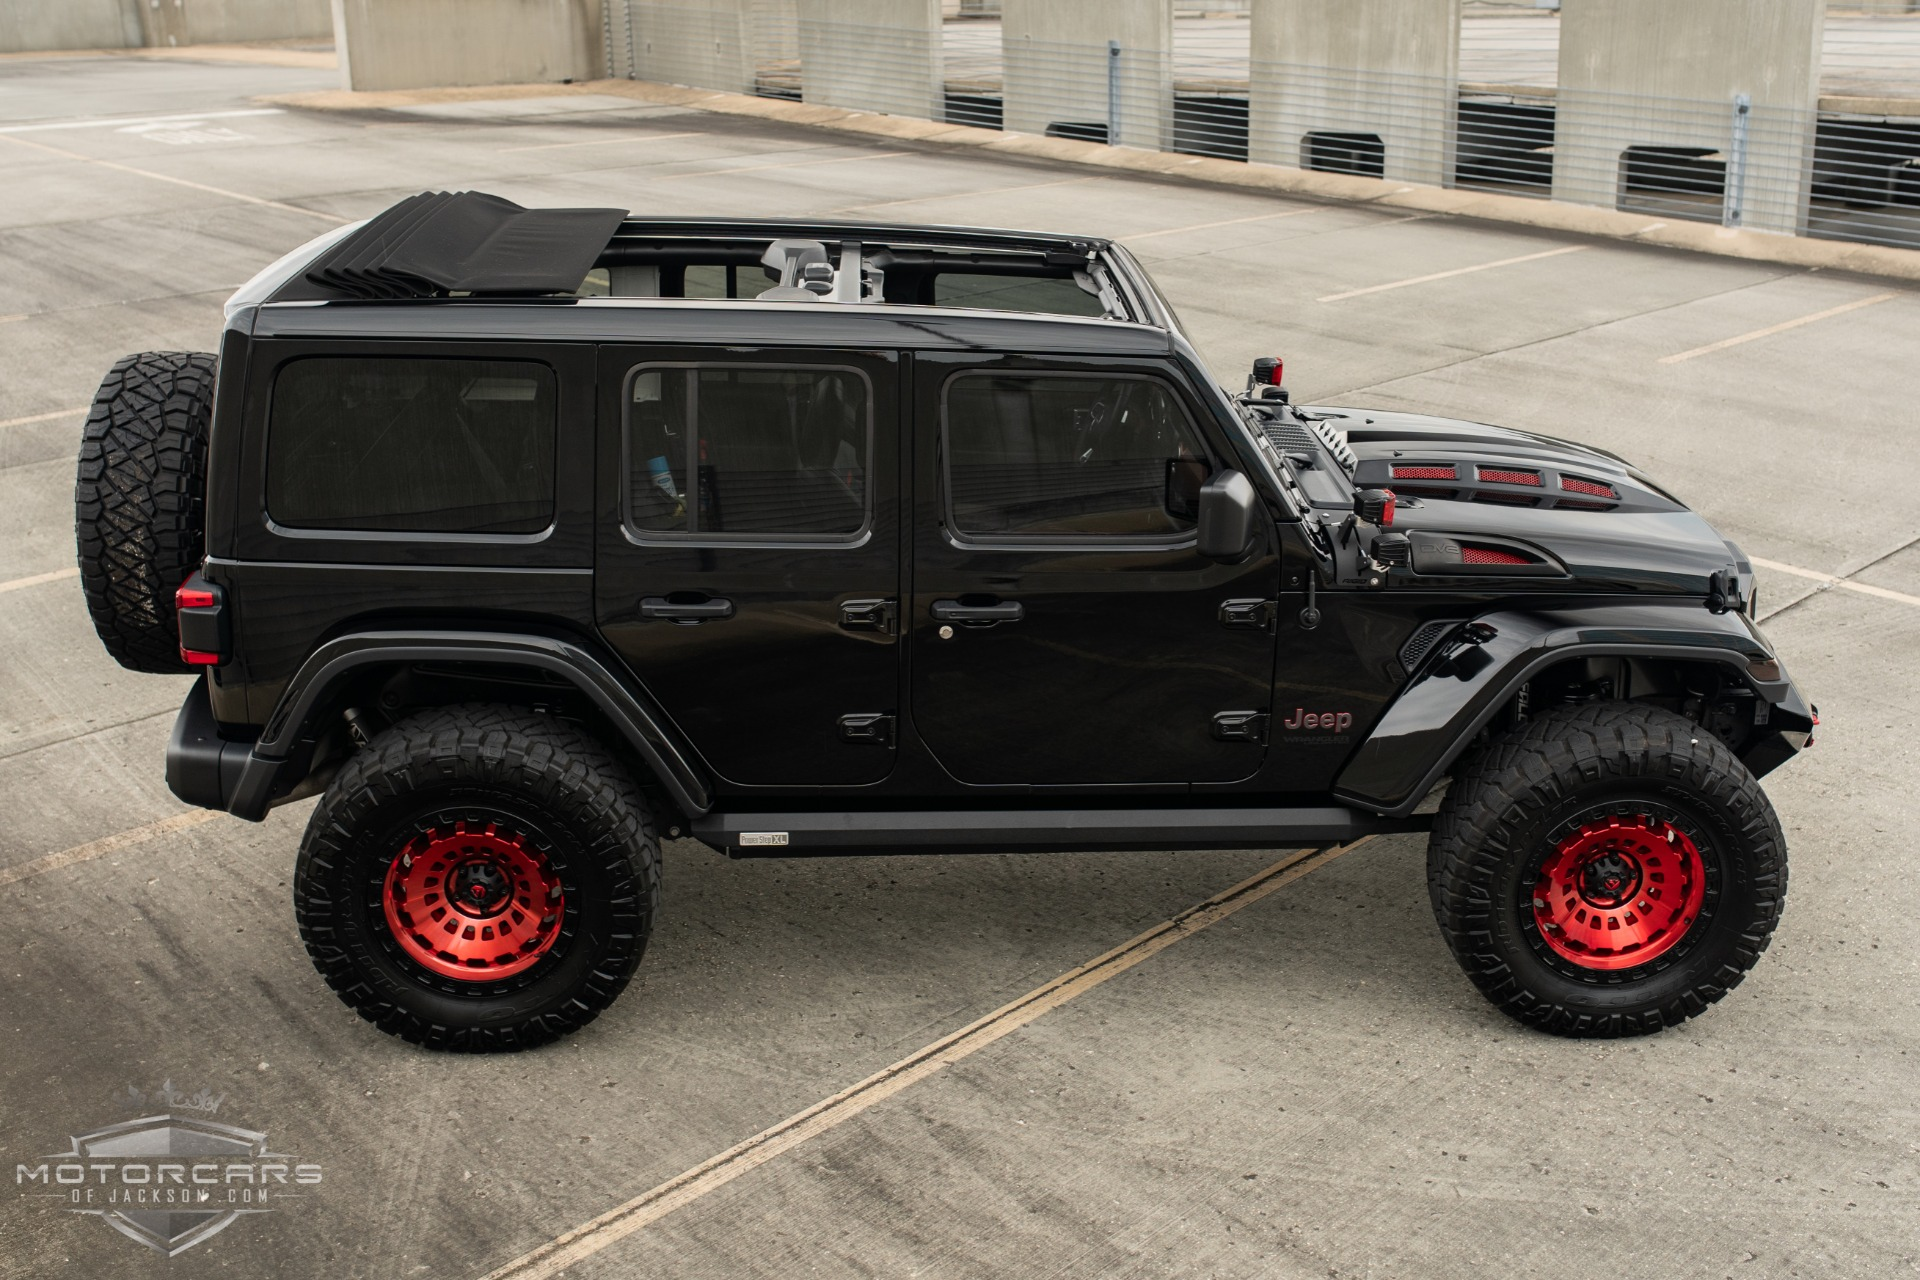 Used-2019-Jeep-Wrangler-Unlimited-Rubicon-Jackson-MS